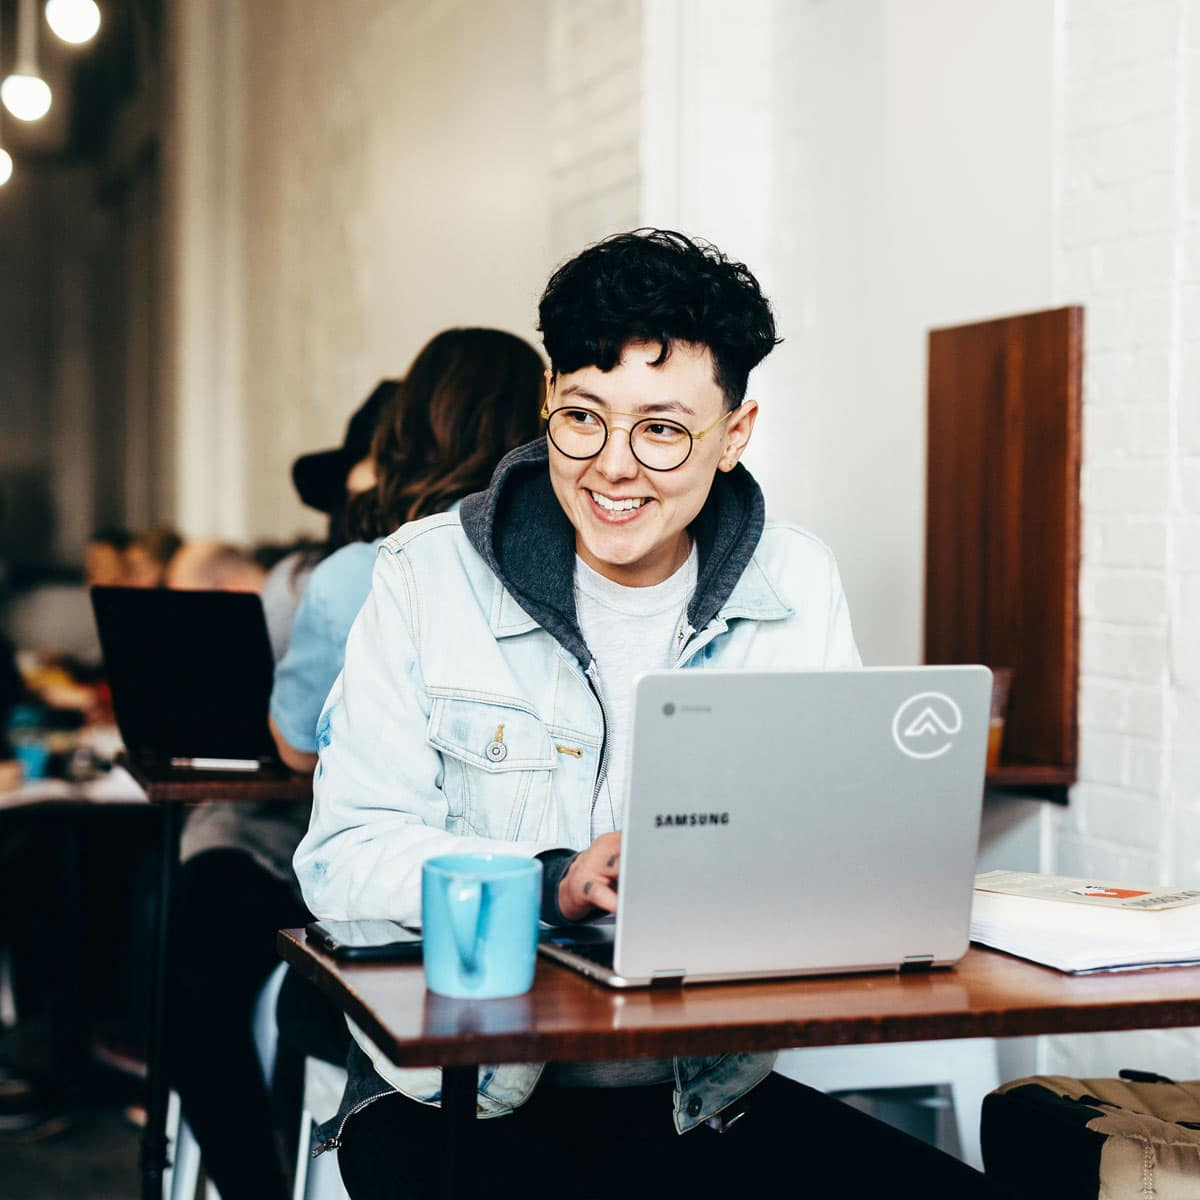 Young man smiling while on a laptop in a coffee shop